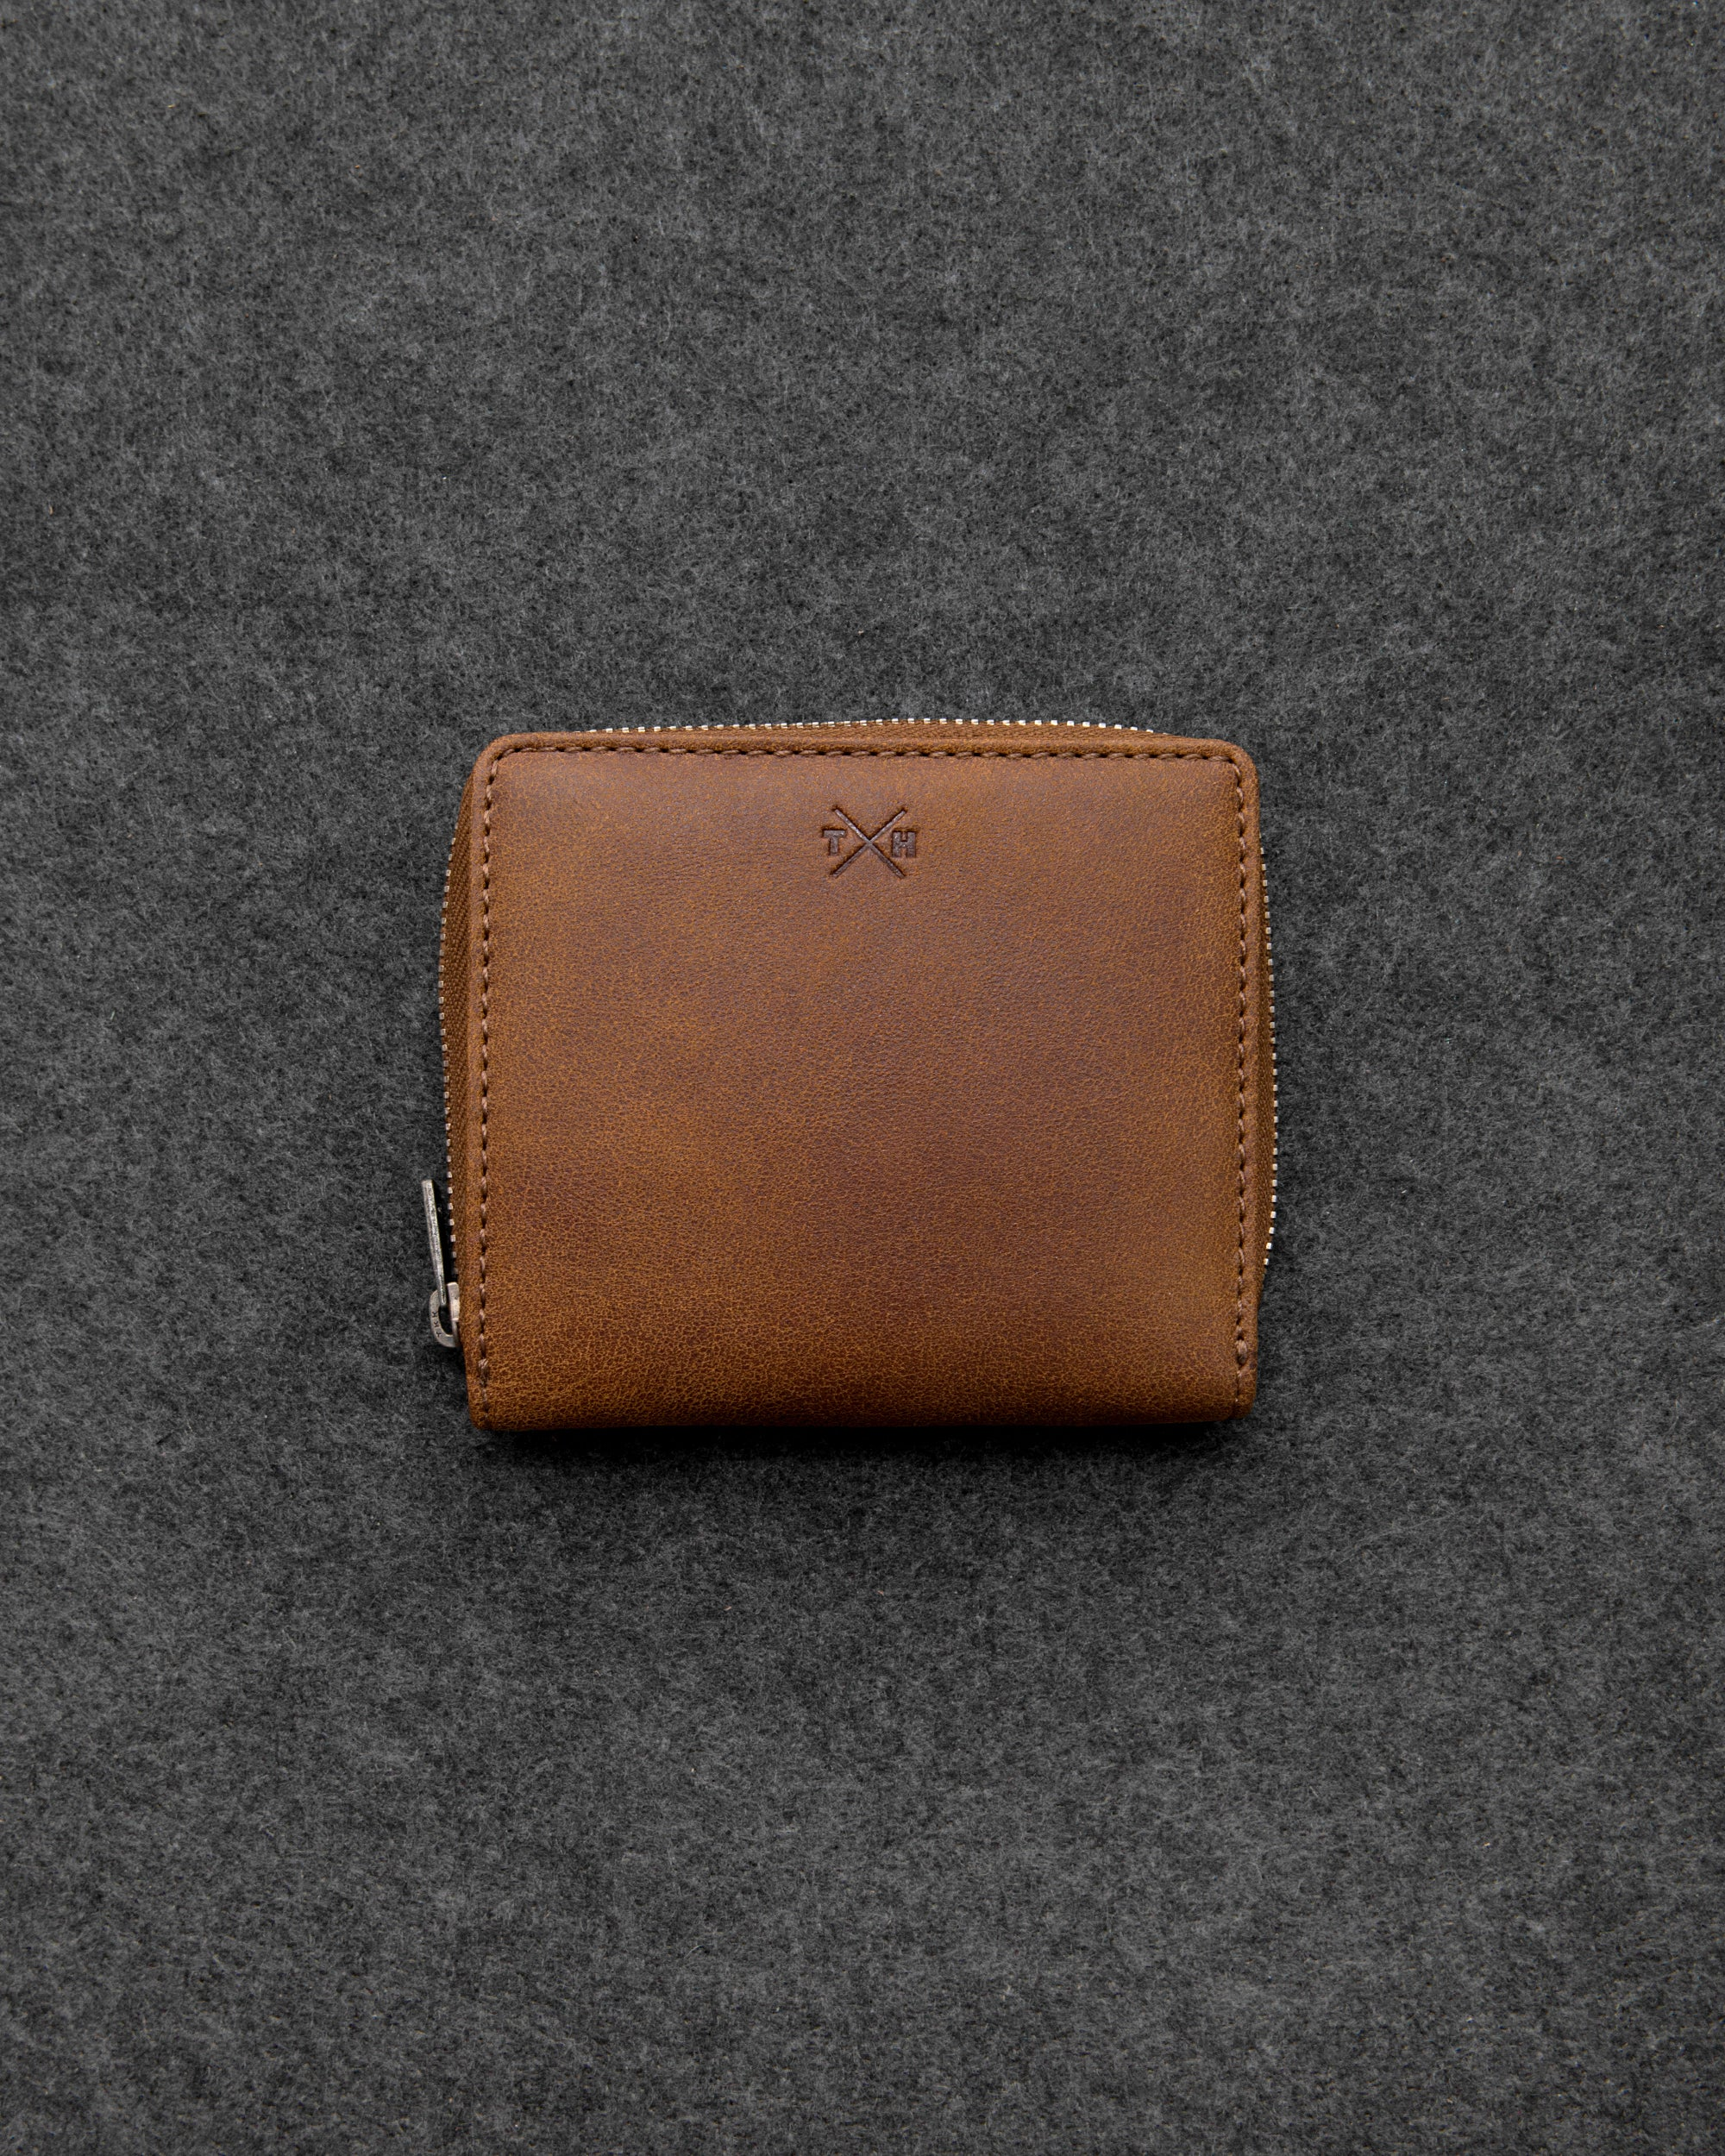 5a691e5ad6a9 Brown Yukon Leather Zip Round Leather Purse by Tumble and Hide